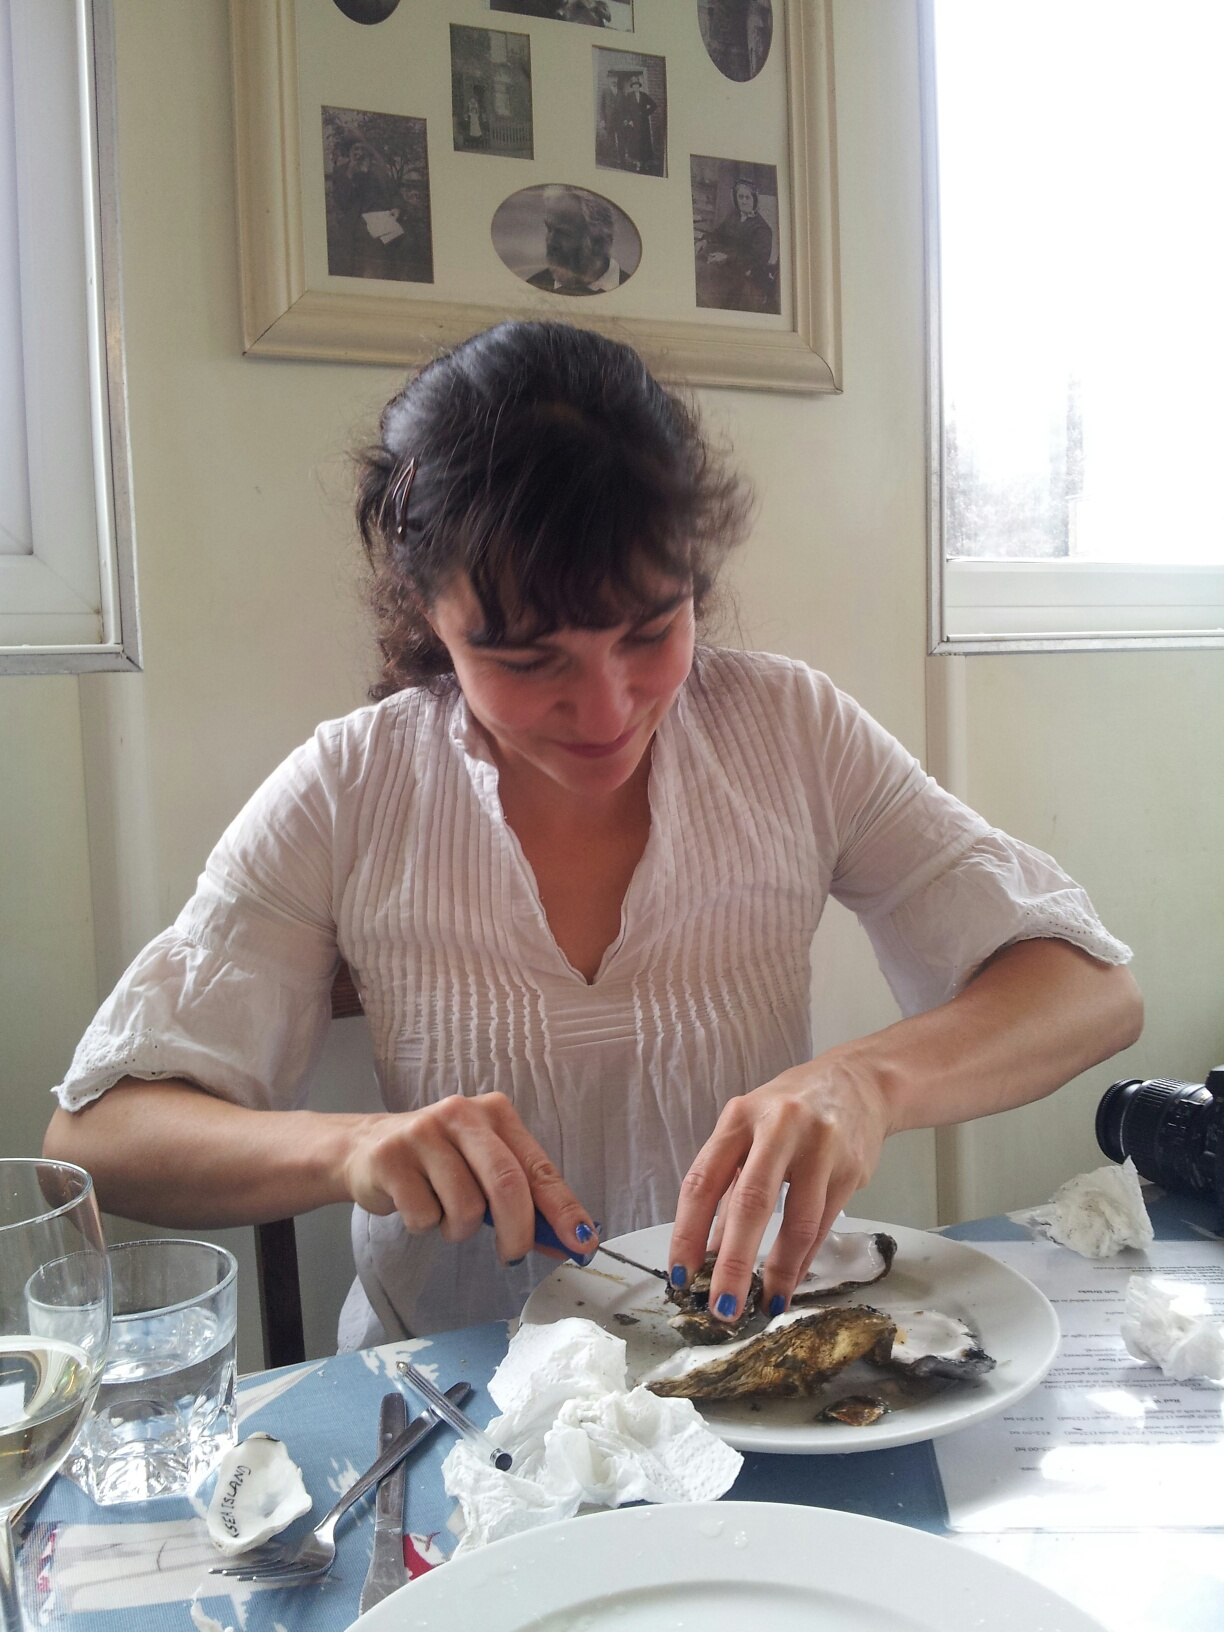 Shucking oysters: A so...